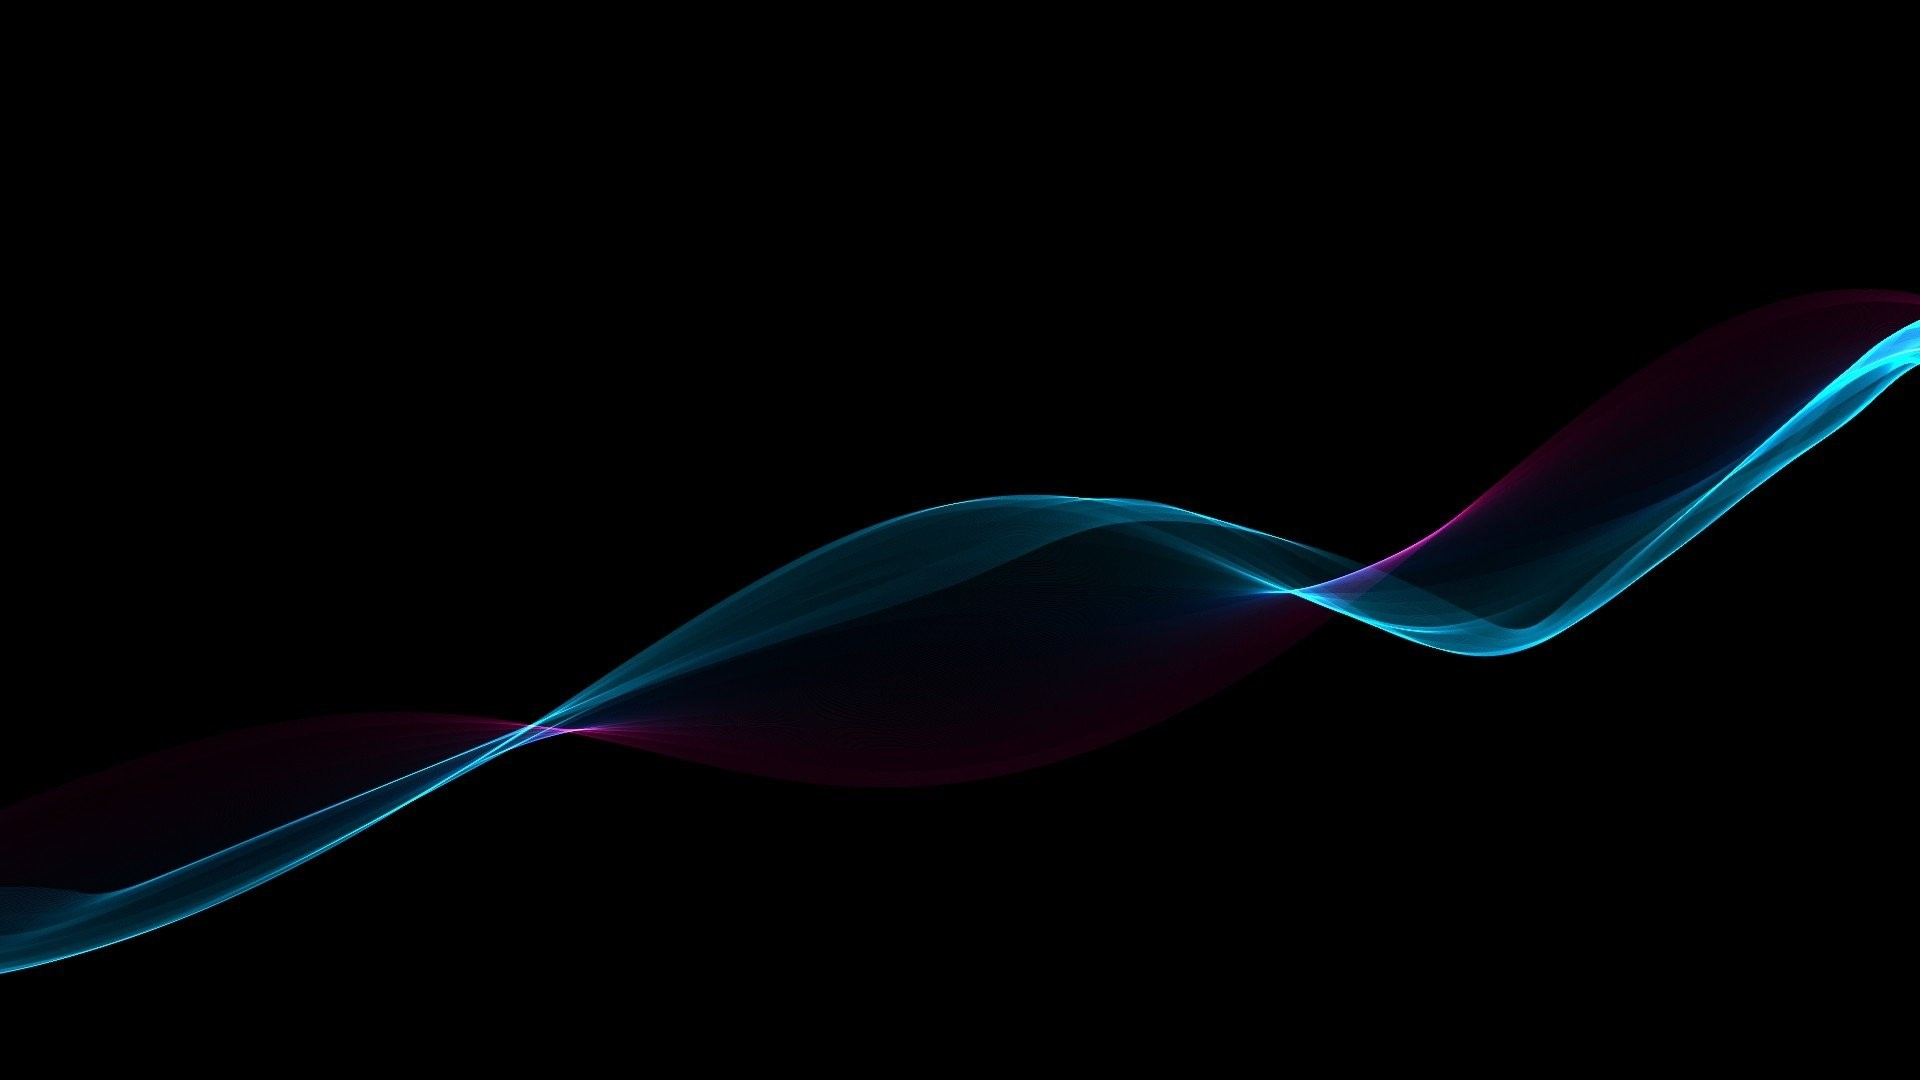 Wallpapers – Dark Gradient Wallpaper by Sharpyne – Customize.org